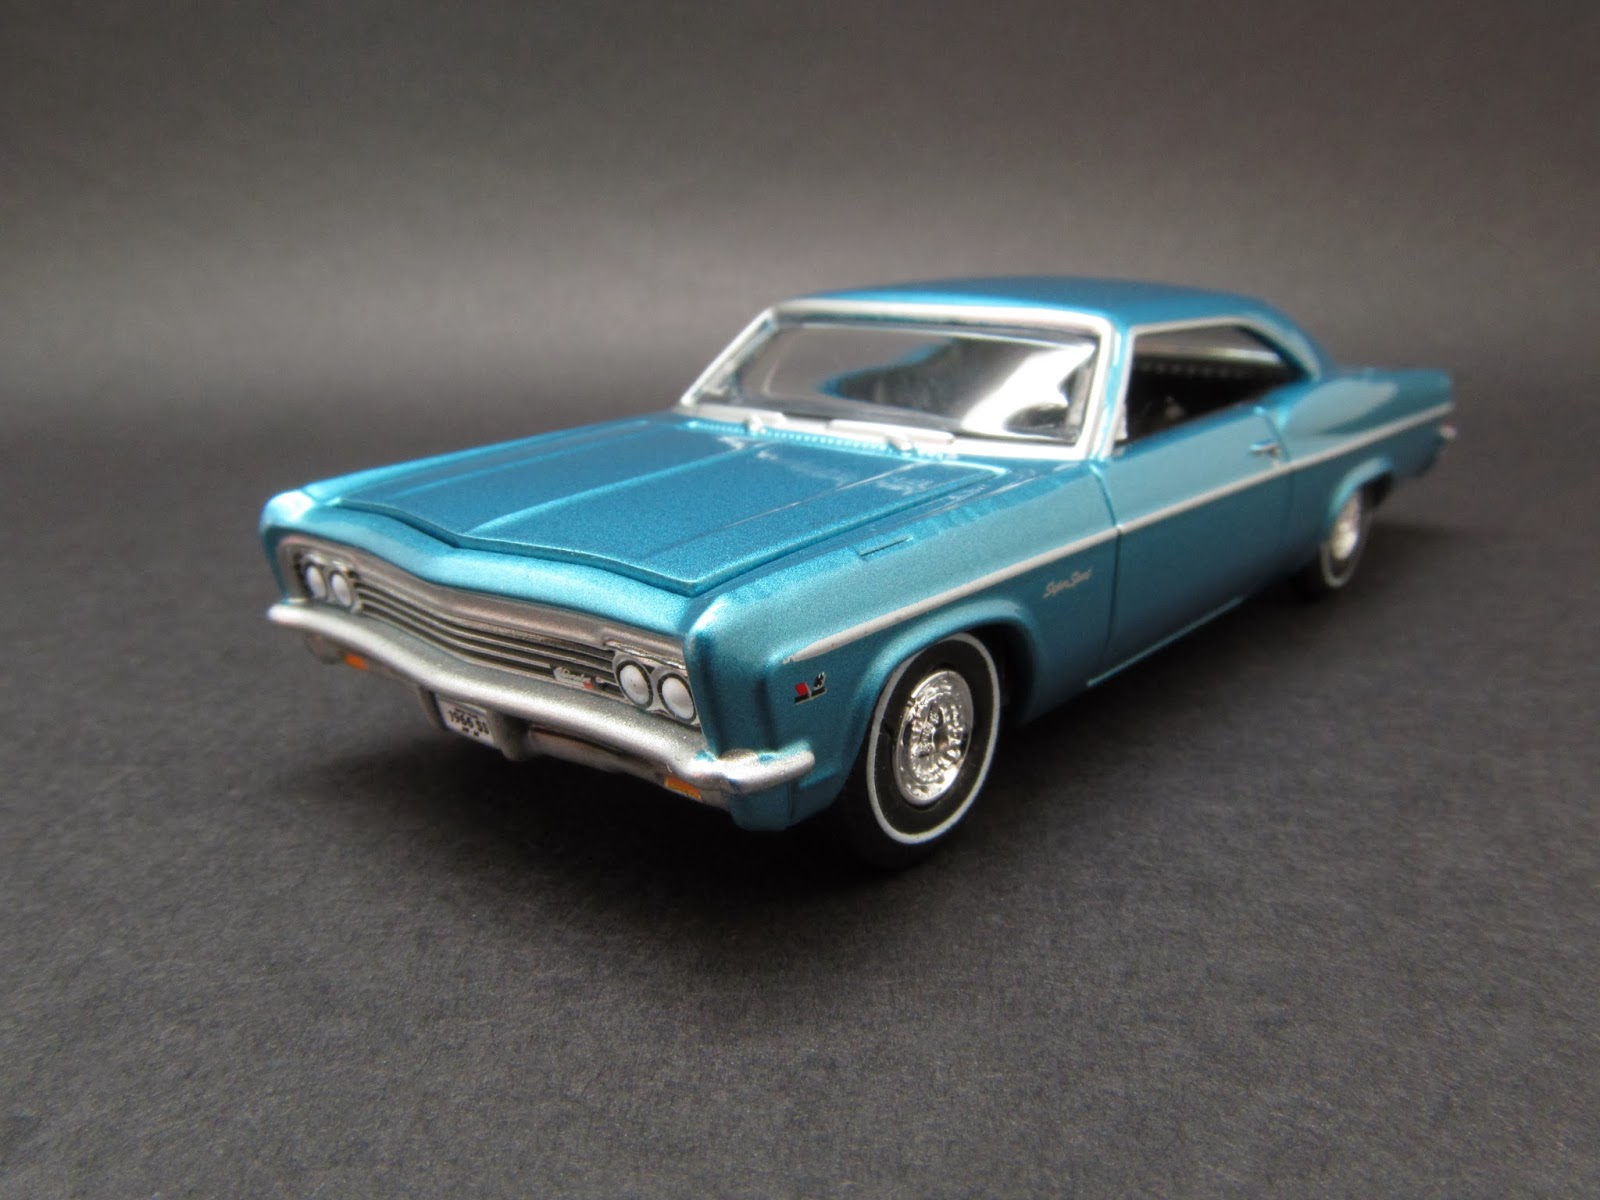 Diecast Hobbist 1966 Chevrolet Impala Ss 164 Scale From Auto World 2013 Vintage Muscle Car Set Detailed Release B